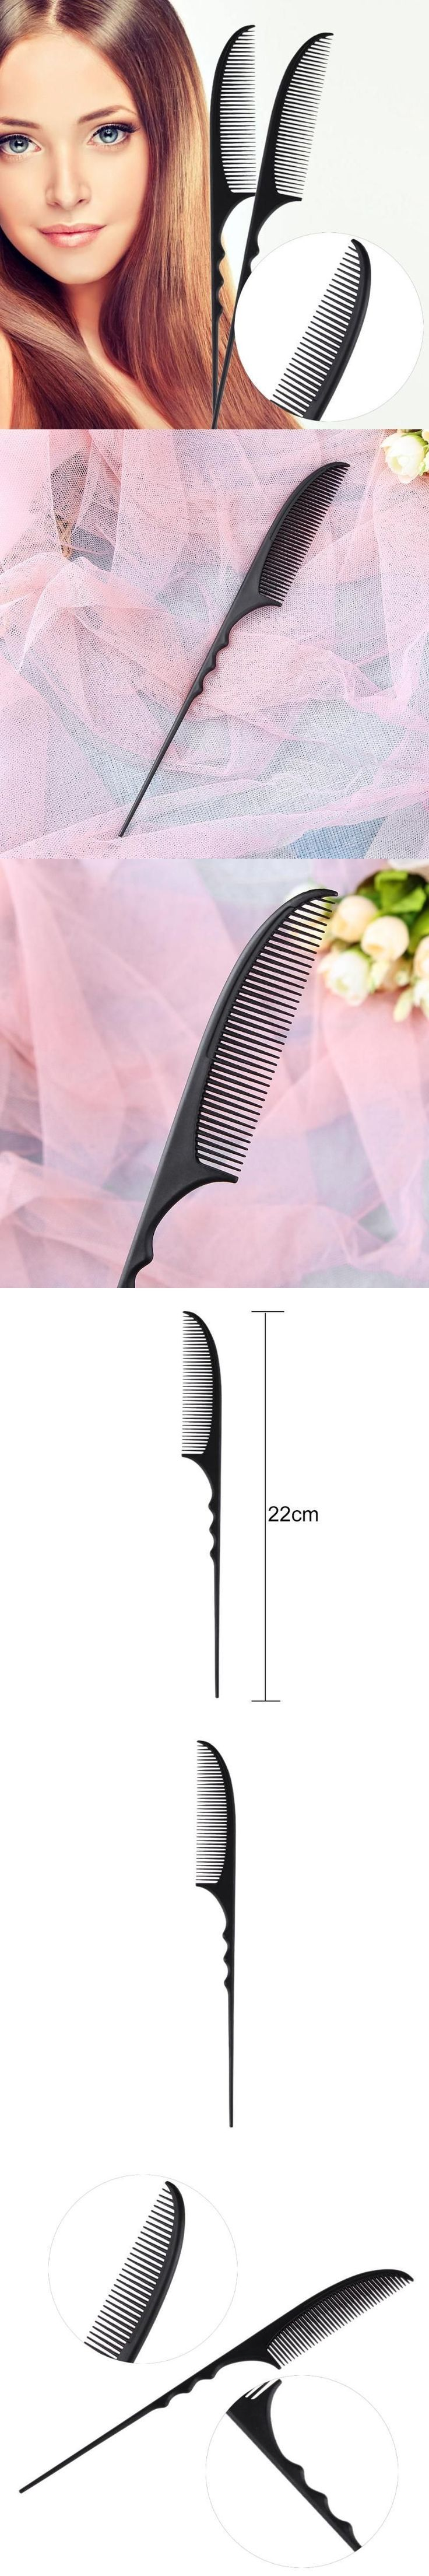 1Pc Insert Hair Pick Comb Afro Hair Pick Comb Fork Hairbrush Plastic High Low Gear Comb for Curly Afro Hair Styling Tools